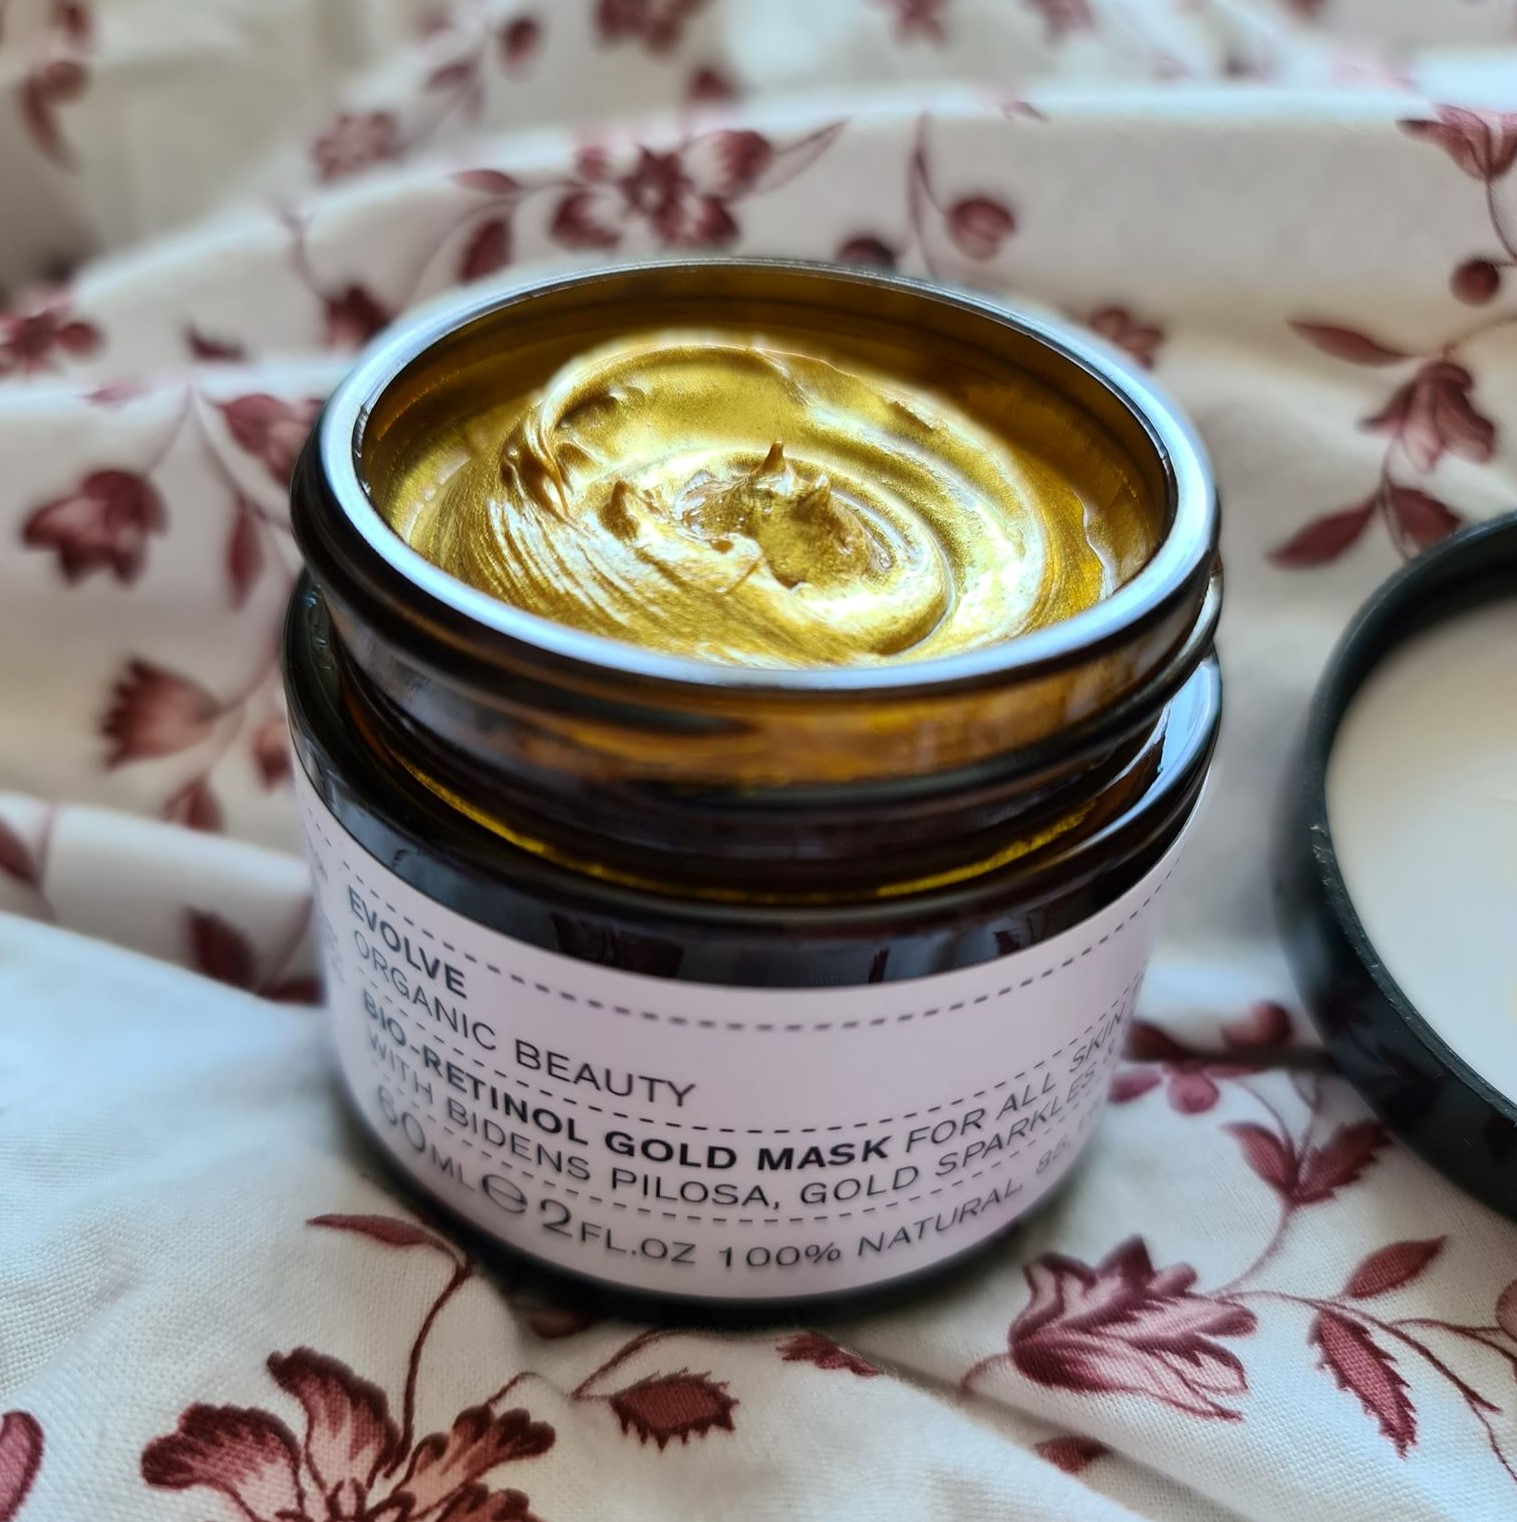 Bio-retinol Gold Face Mask by Evolve Beauty